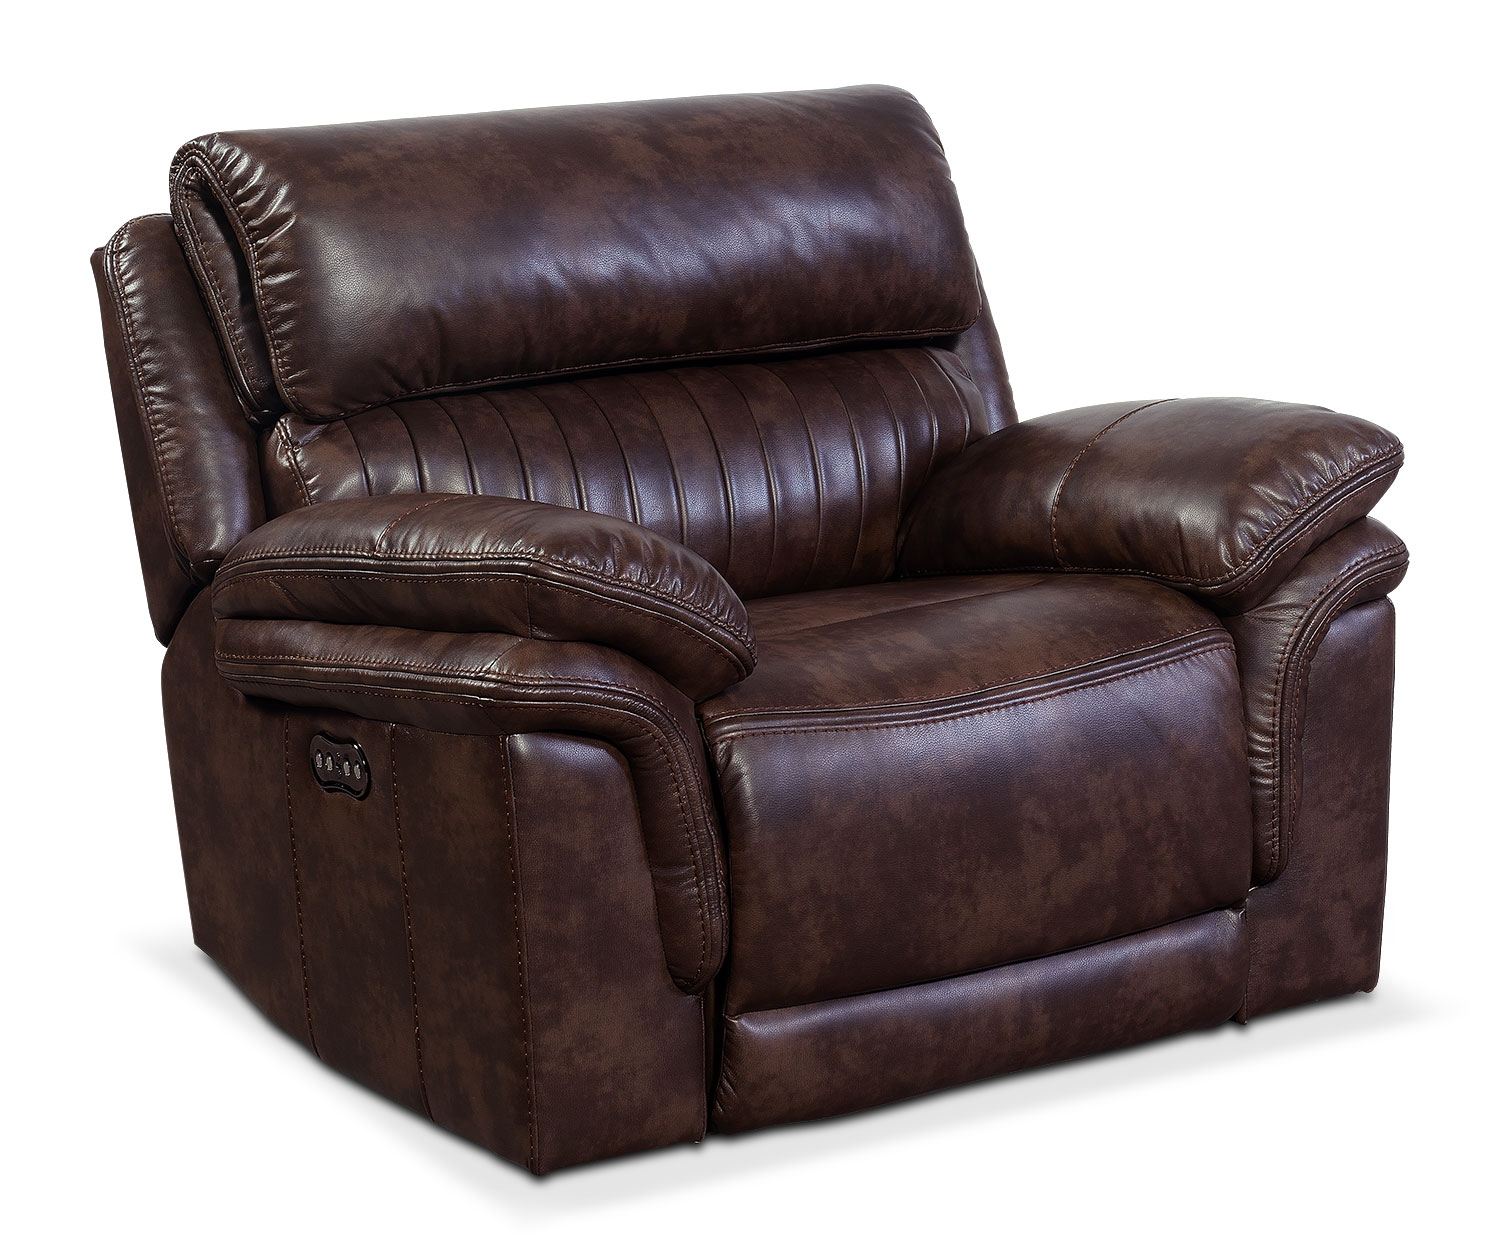 Living Room Furniture - Monterey Power Recliner - Chocolate